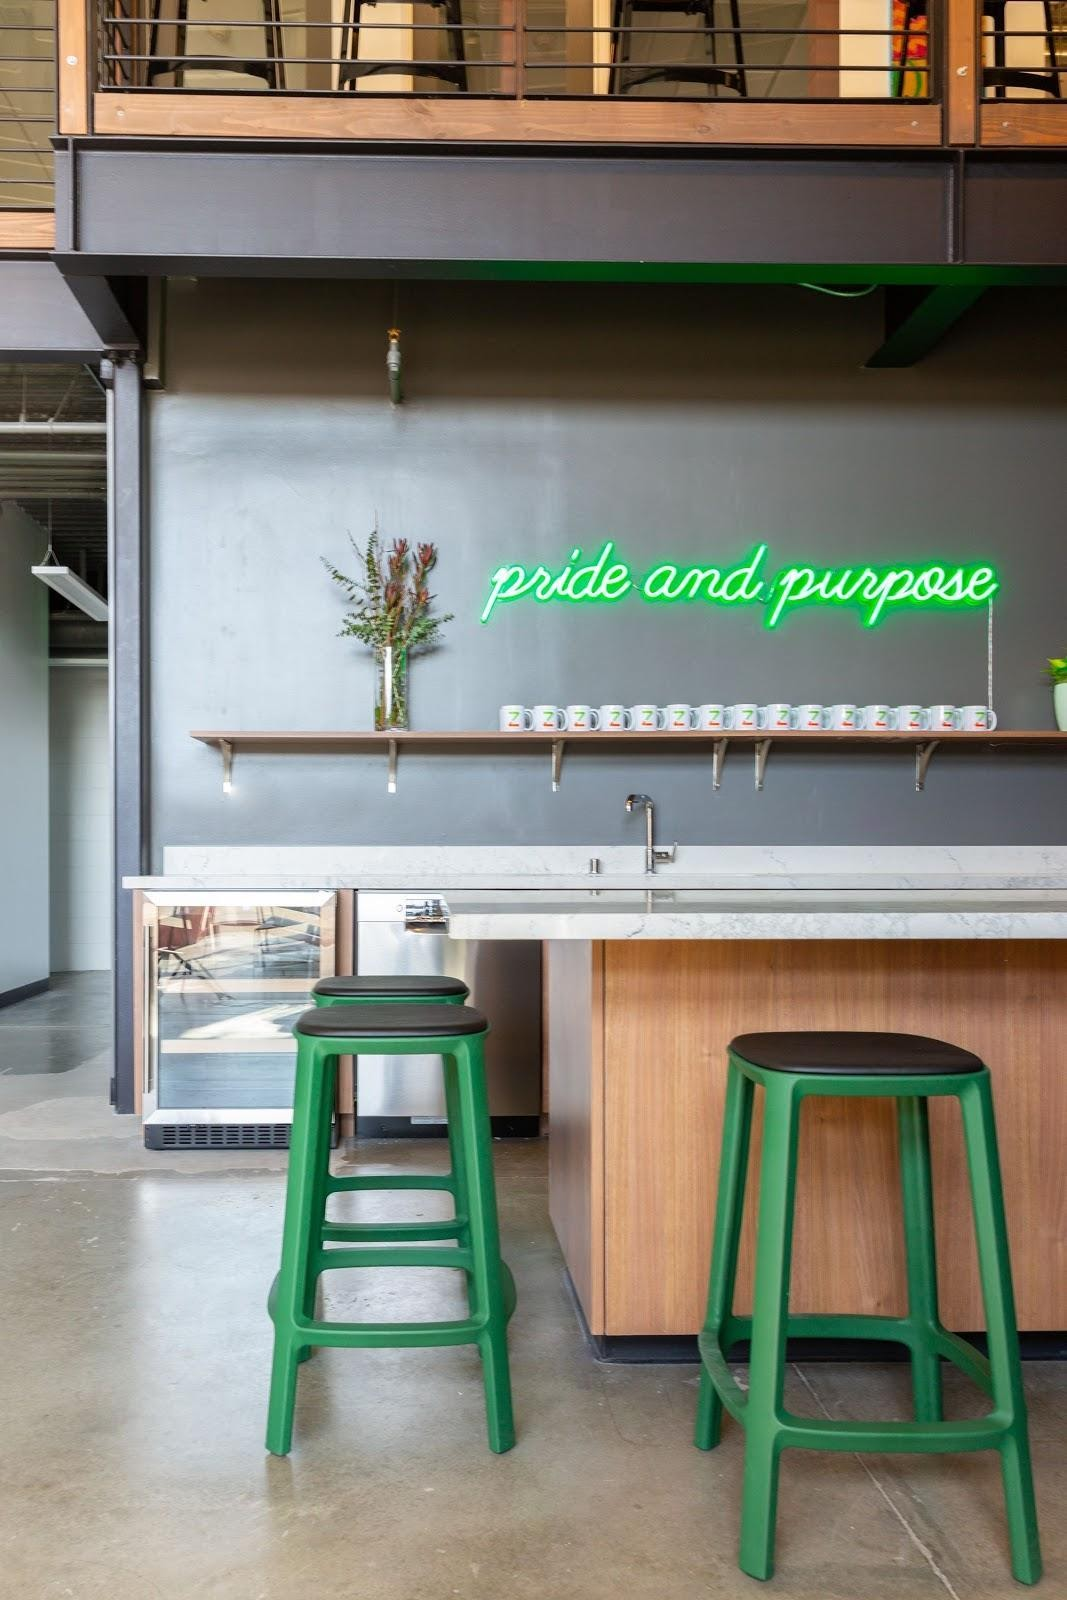 kitchenette pride and purpose neon sign steel wood coworking space green chairs